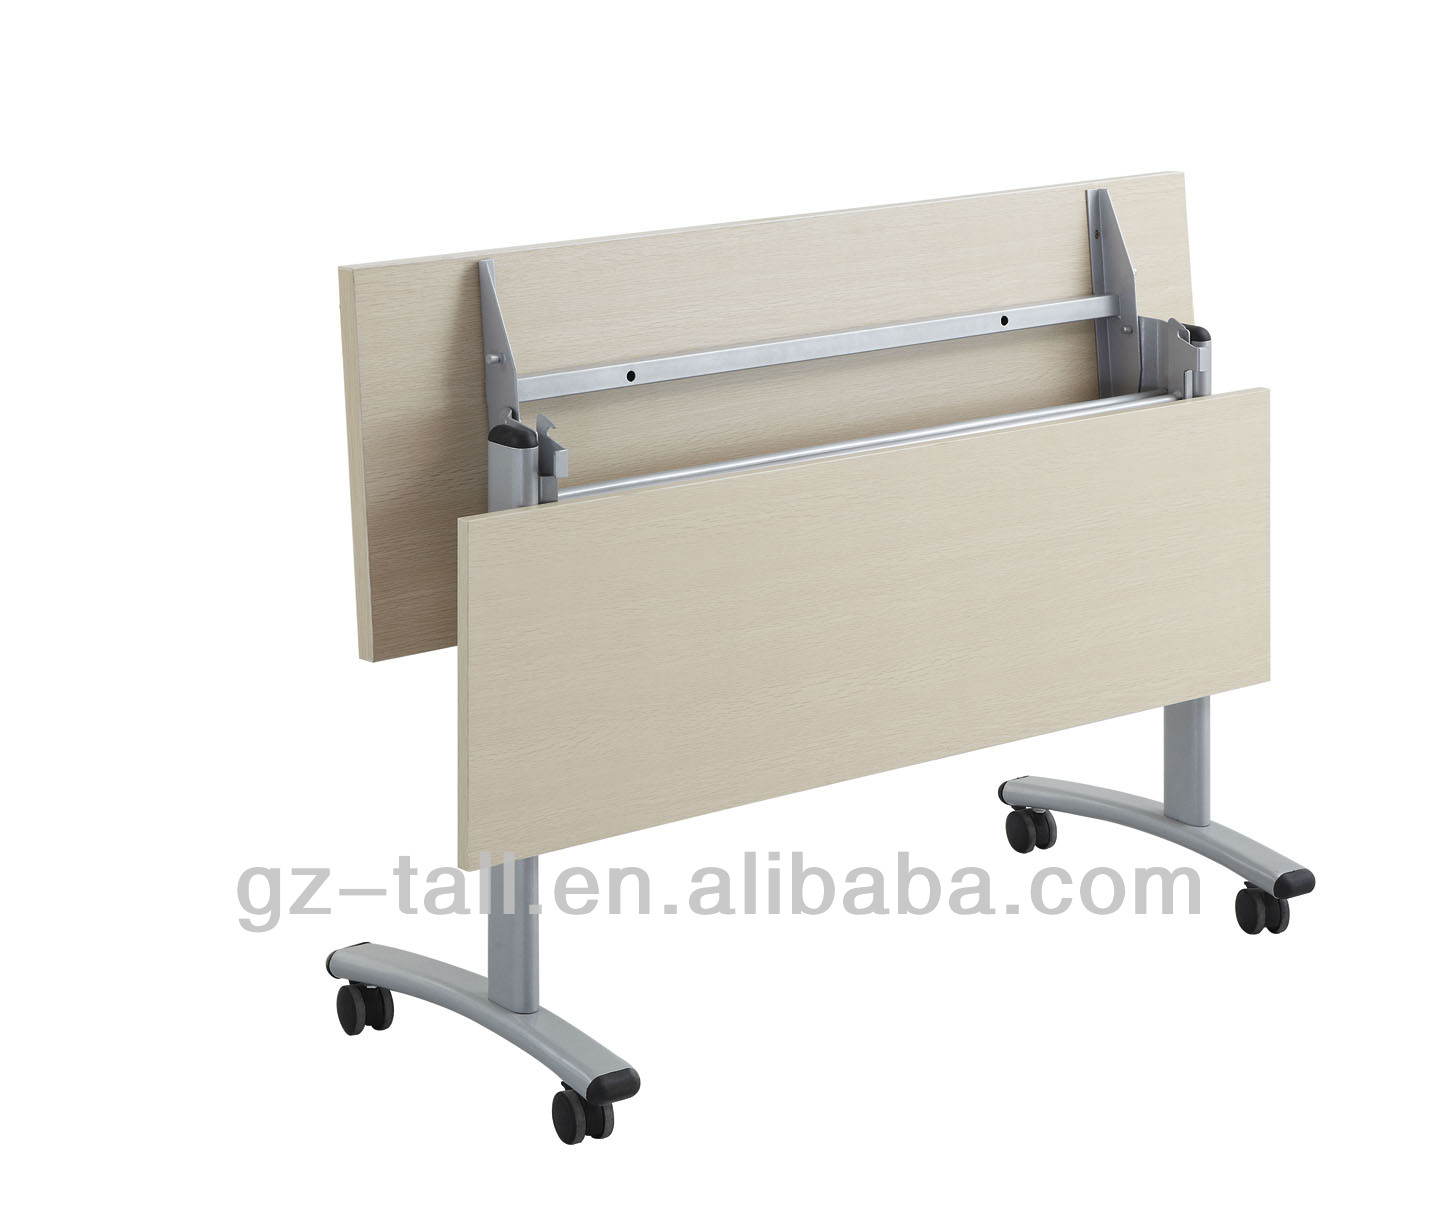 Meeting Room Folding Movable Conference Table Buy Movable - Portable conference table